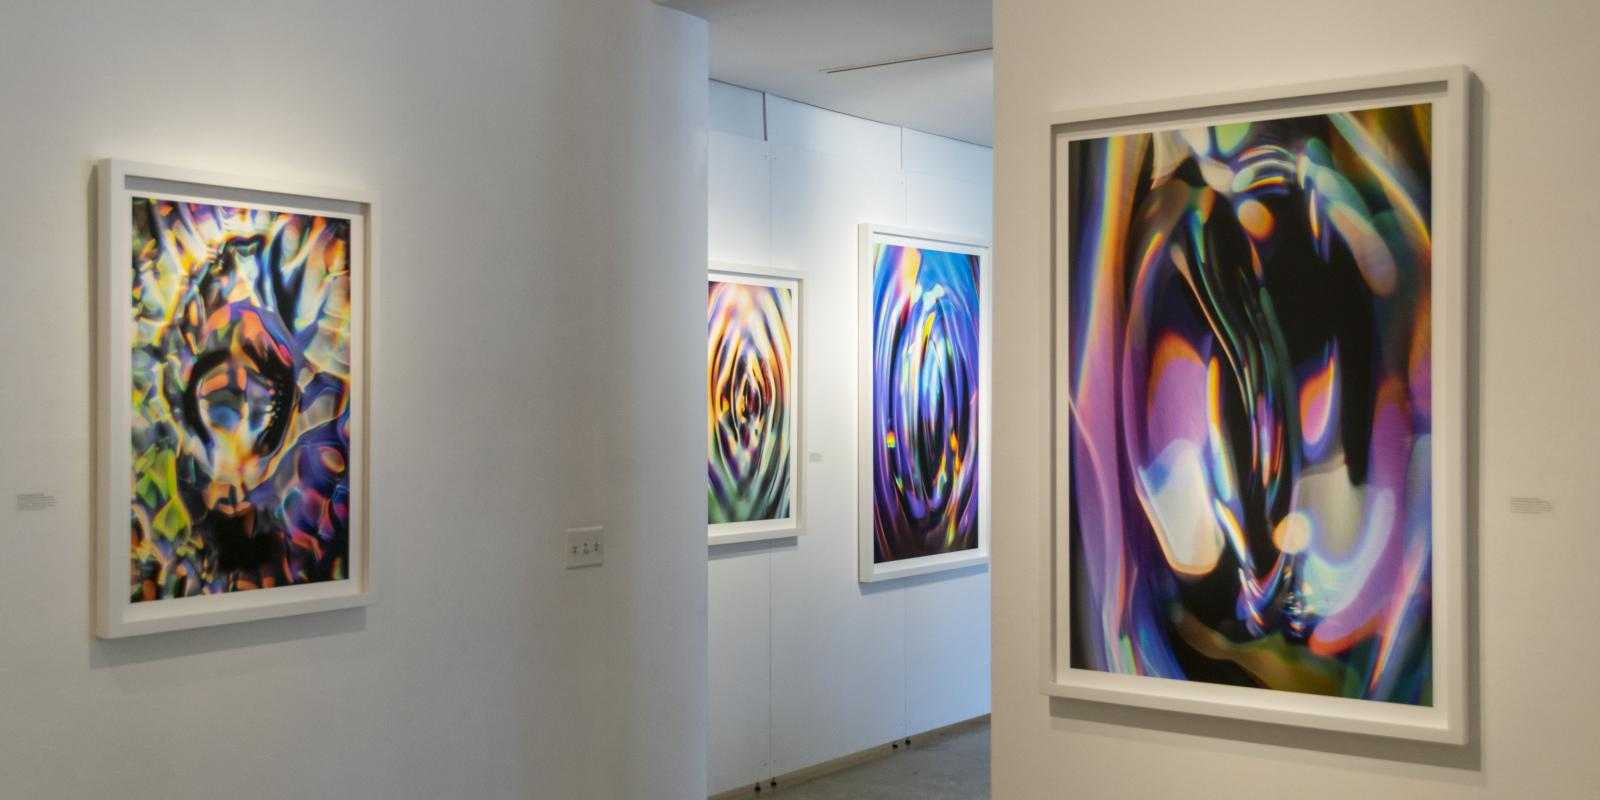 Eastside view of gallery, Exhibition: Sasha vom Dorp: 15.15 Hz, Aug. 23 - Oct. 18, 2018, Curator: Michele Cairella Fillmore, W. Keith & Janet Kellogg Art Gallery, Cal Poly Pomona. [Artist Sasha vom Dorp captures the interaction of light, sound and water in high-speed photography (Photo Credit: William W. Gunn)]